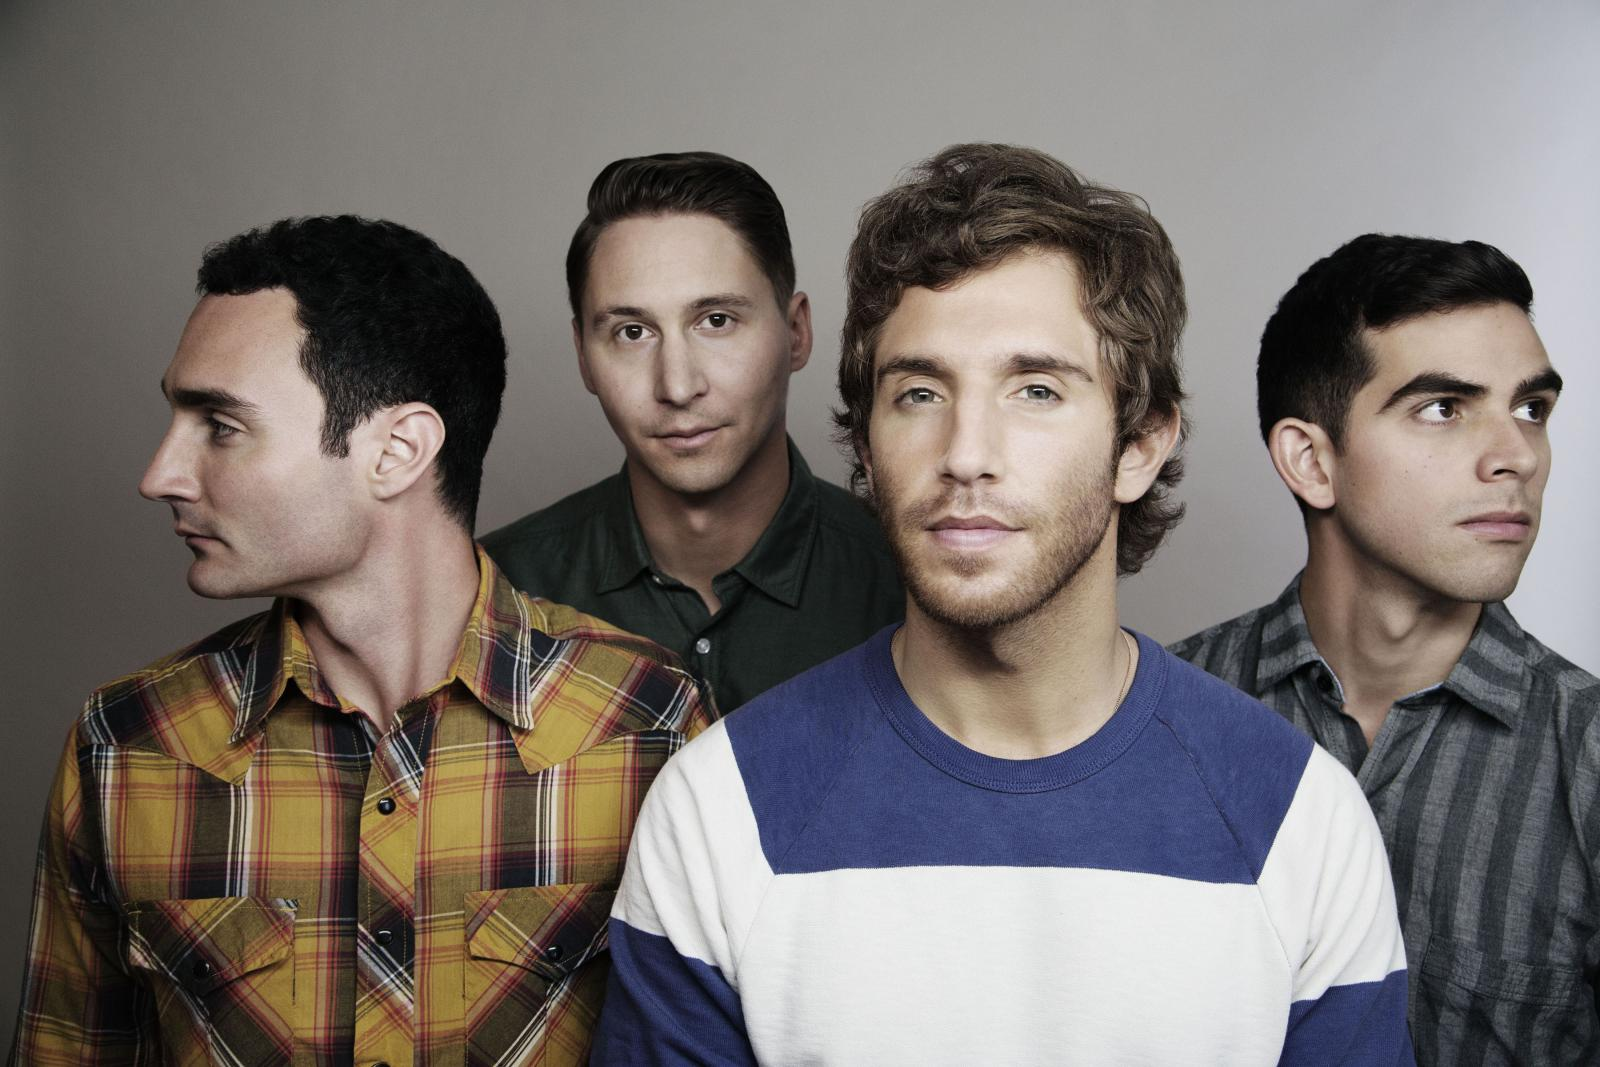 SMALLPOOLS2_photo_cred_Dan_Monick